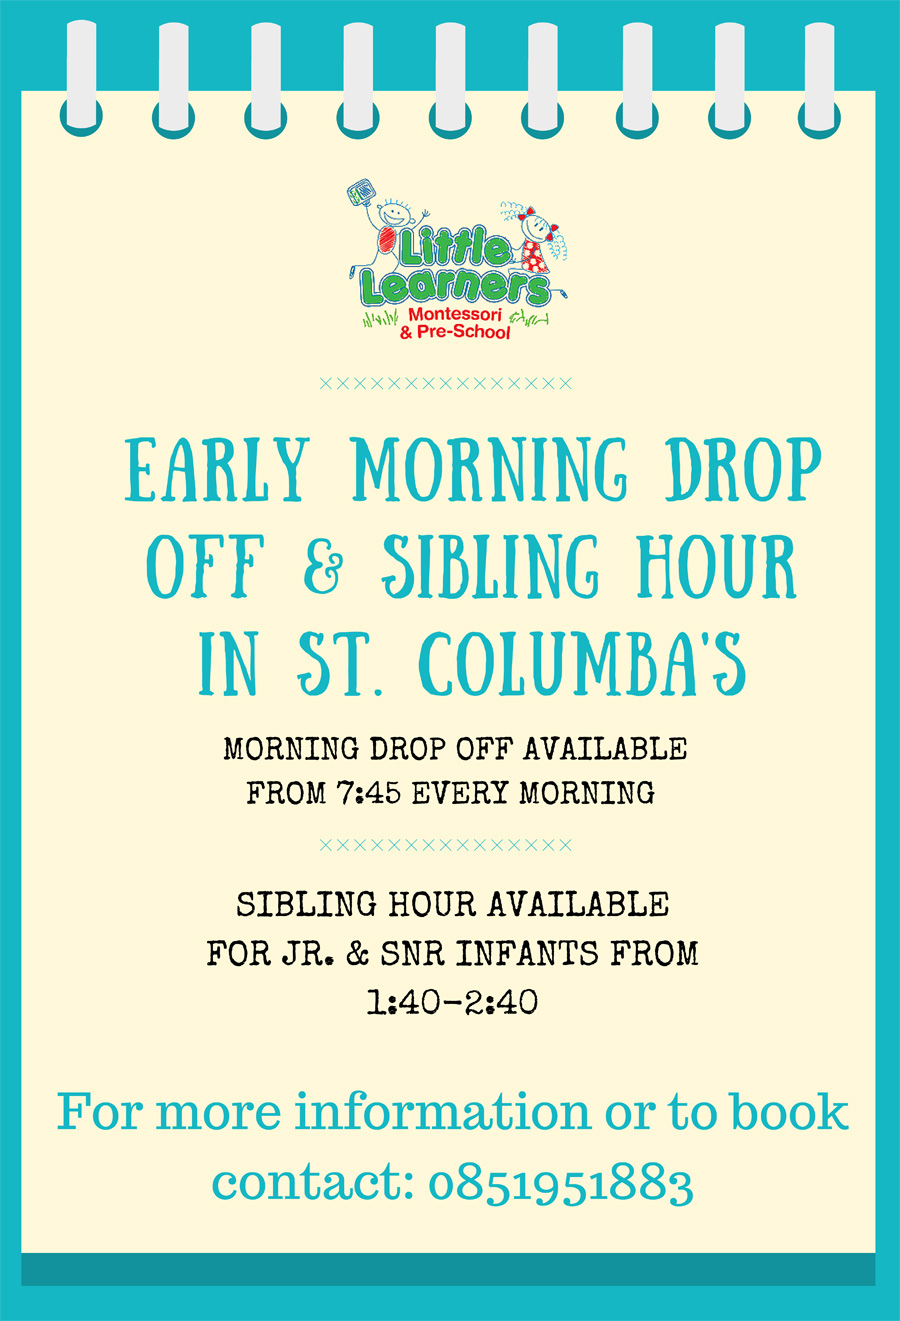 St Columba's morning drop and sibling hour